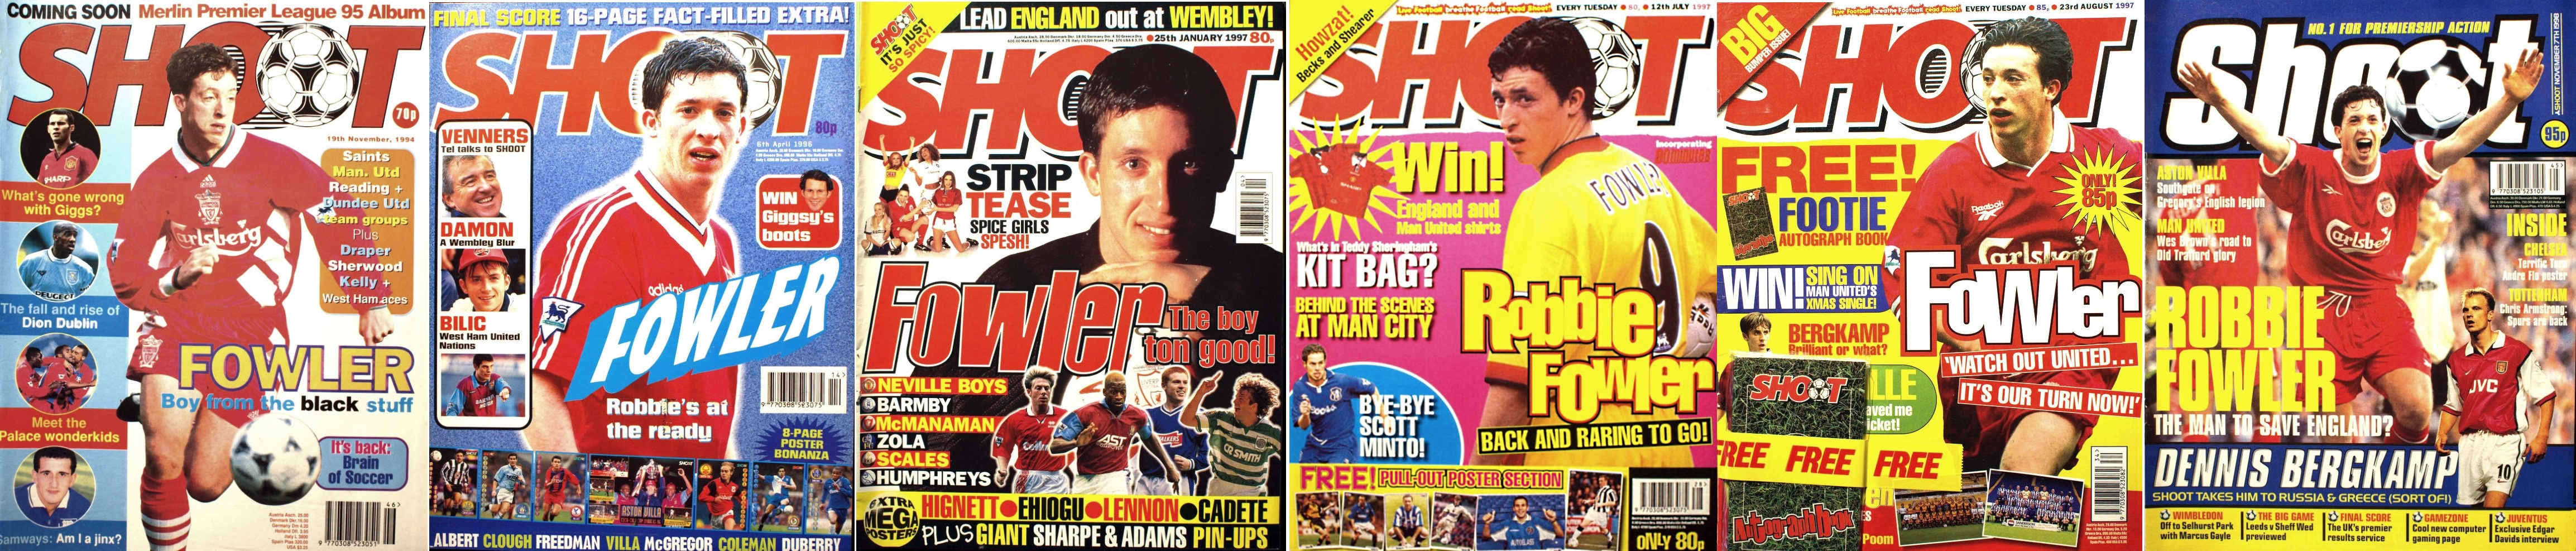 Robbie Fowler on the cover of Shoot! 1995-1998